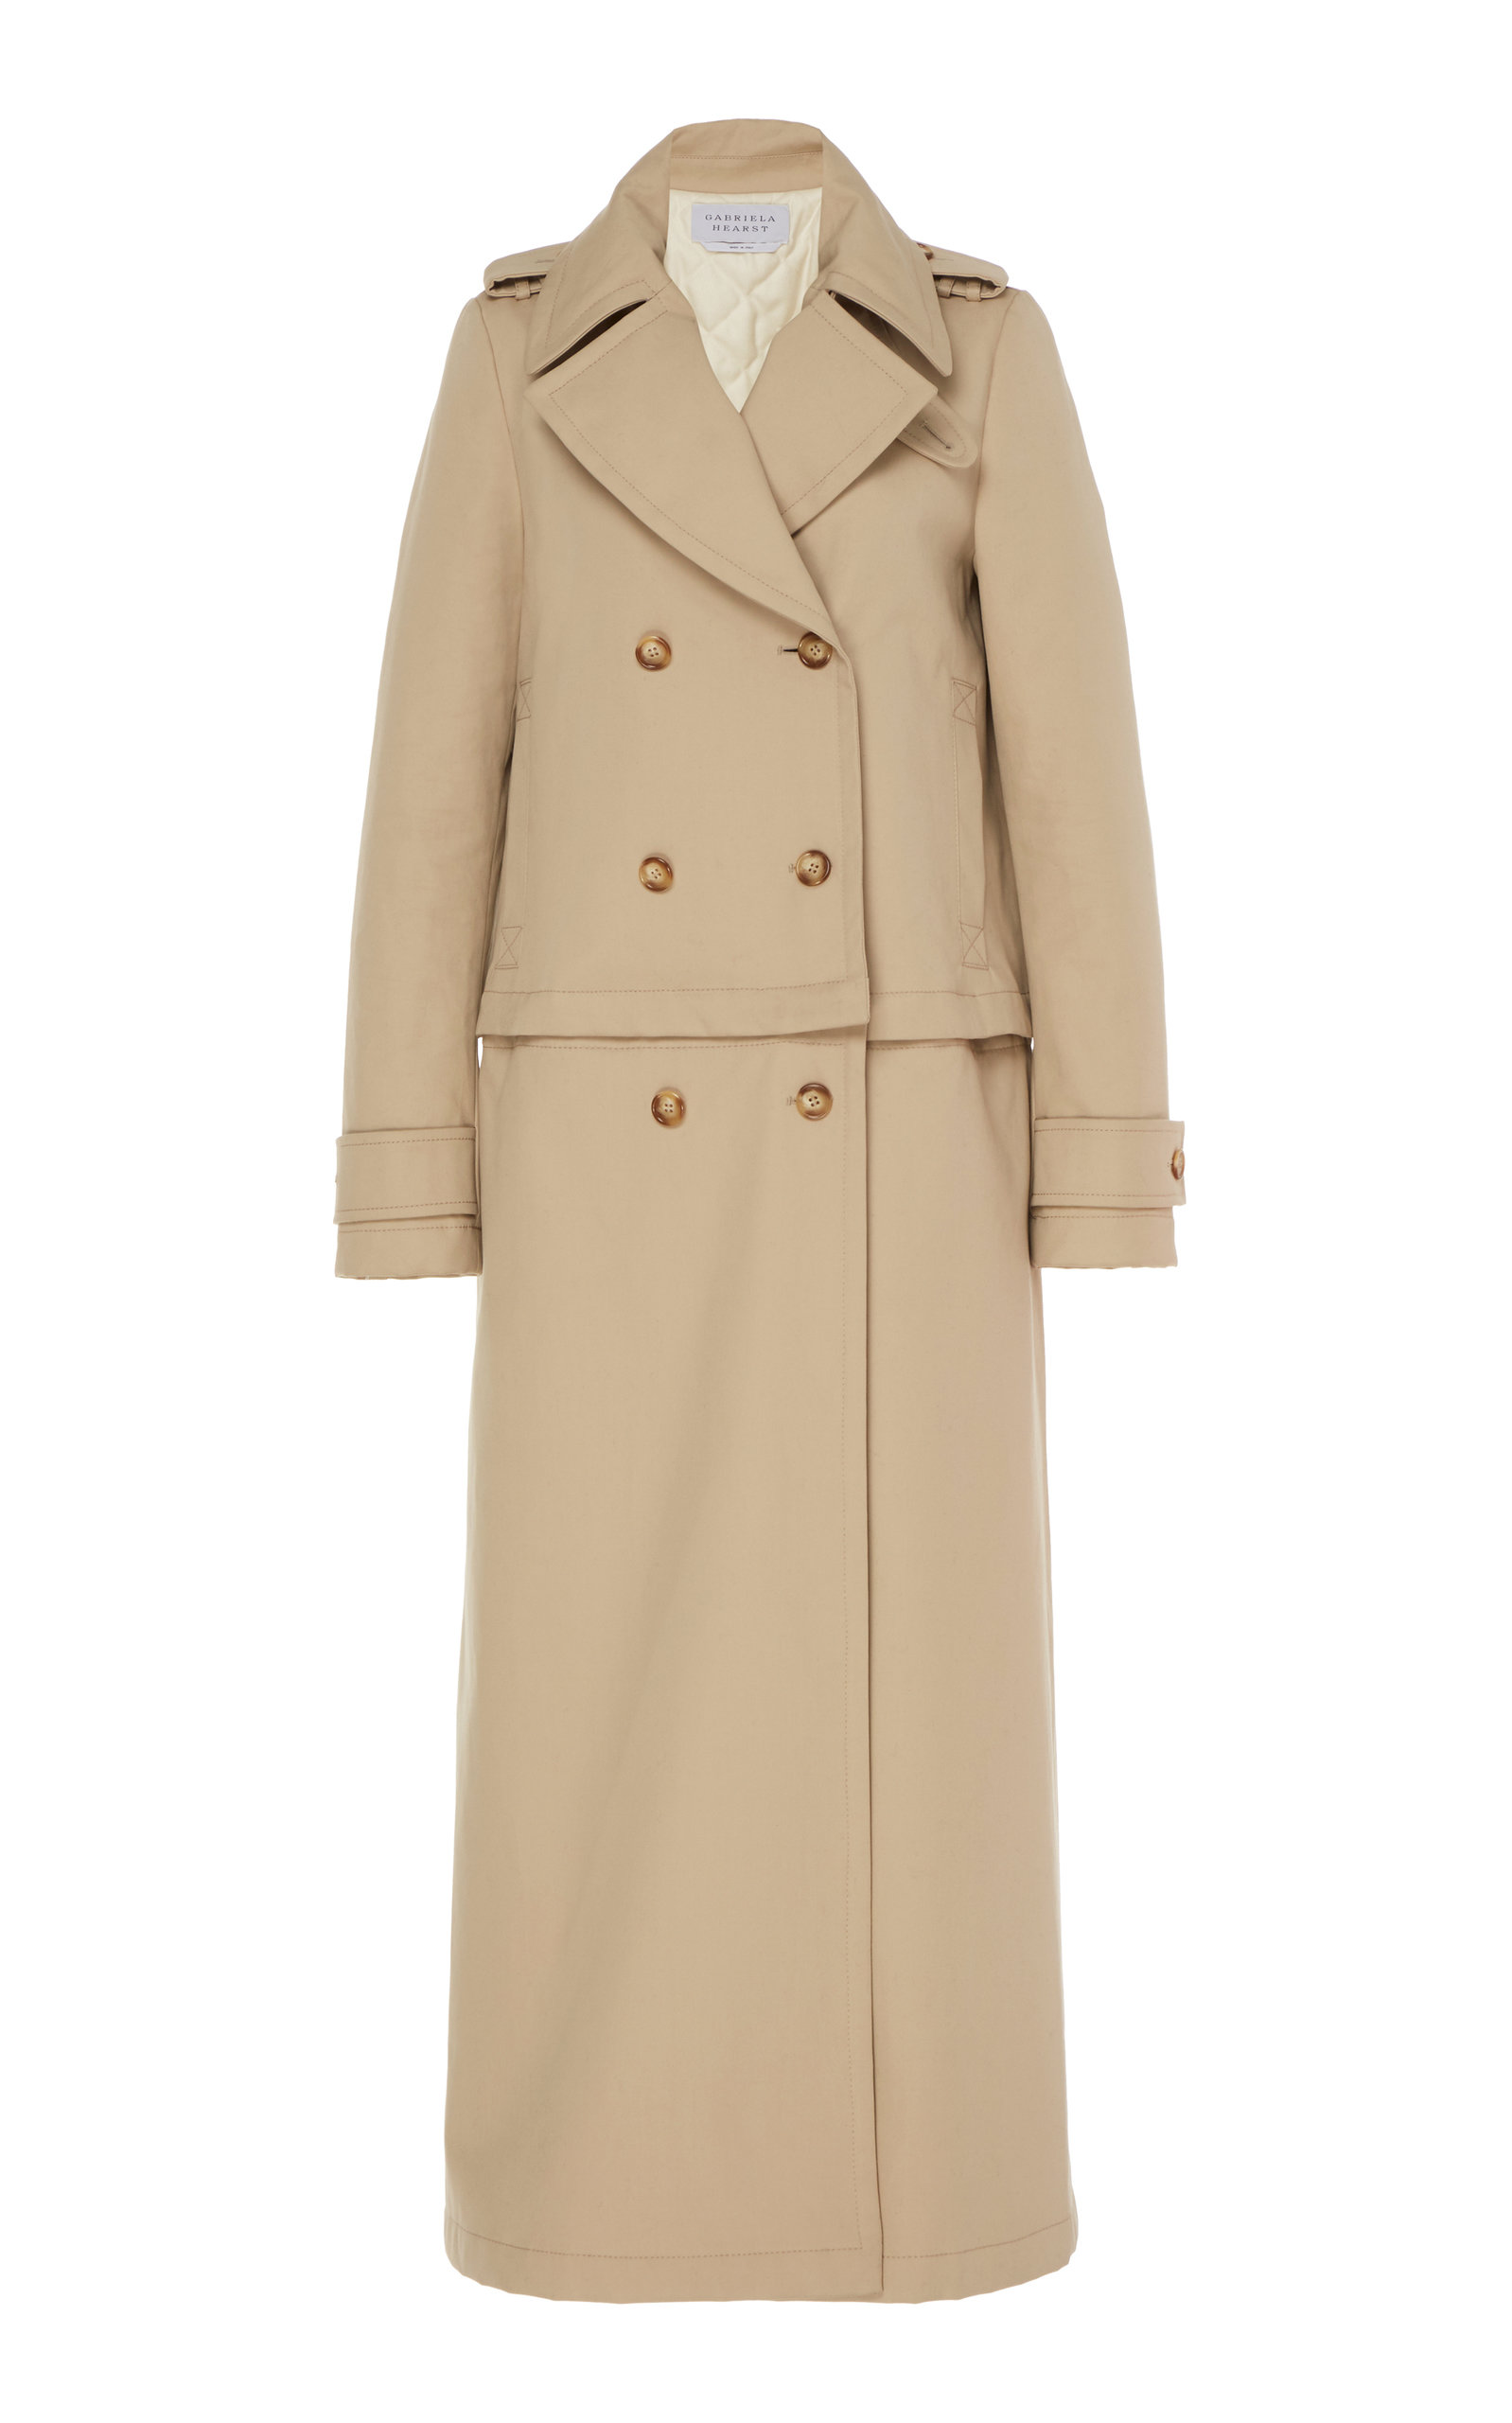 Gabriela Hearst Coats GUSEV DECONSTRUCTED COTTON TRENCH COAT